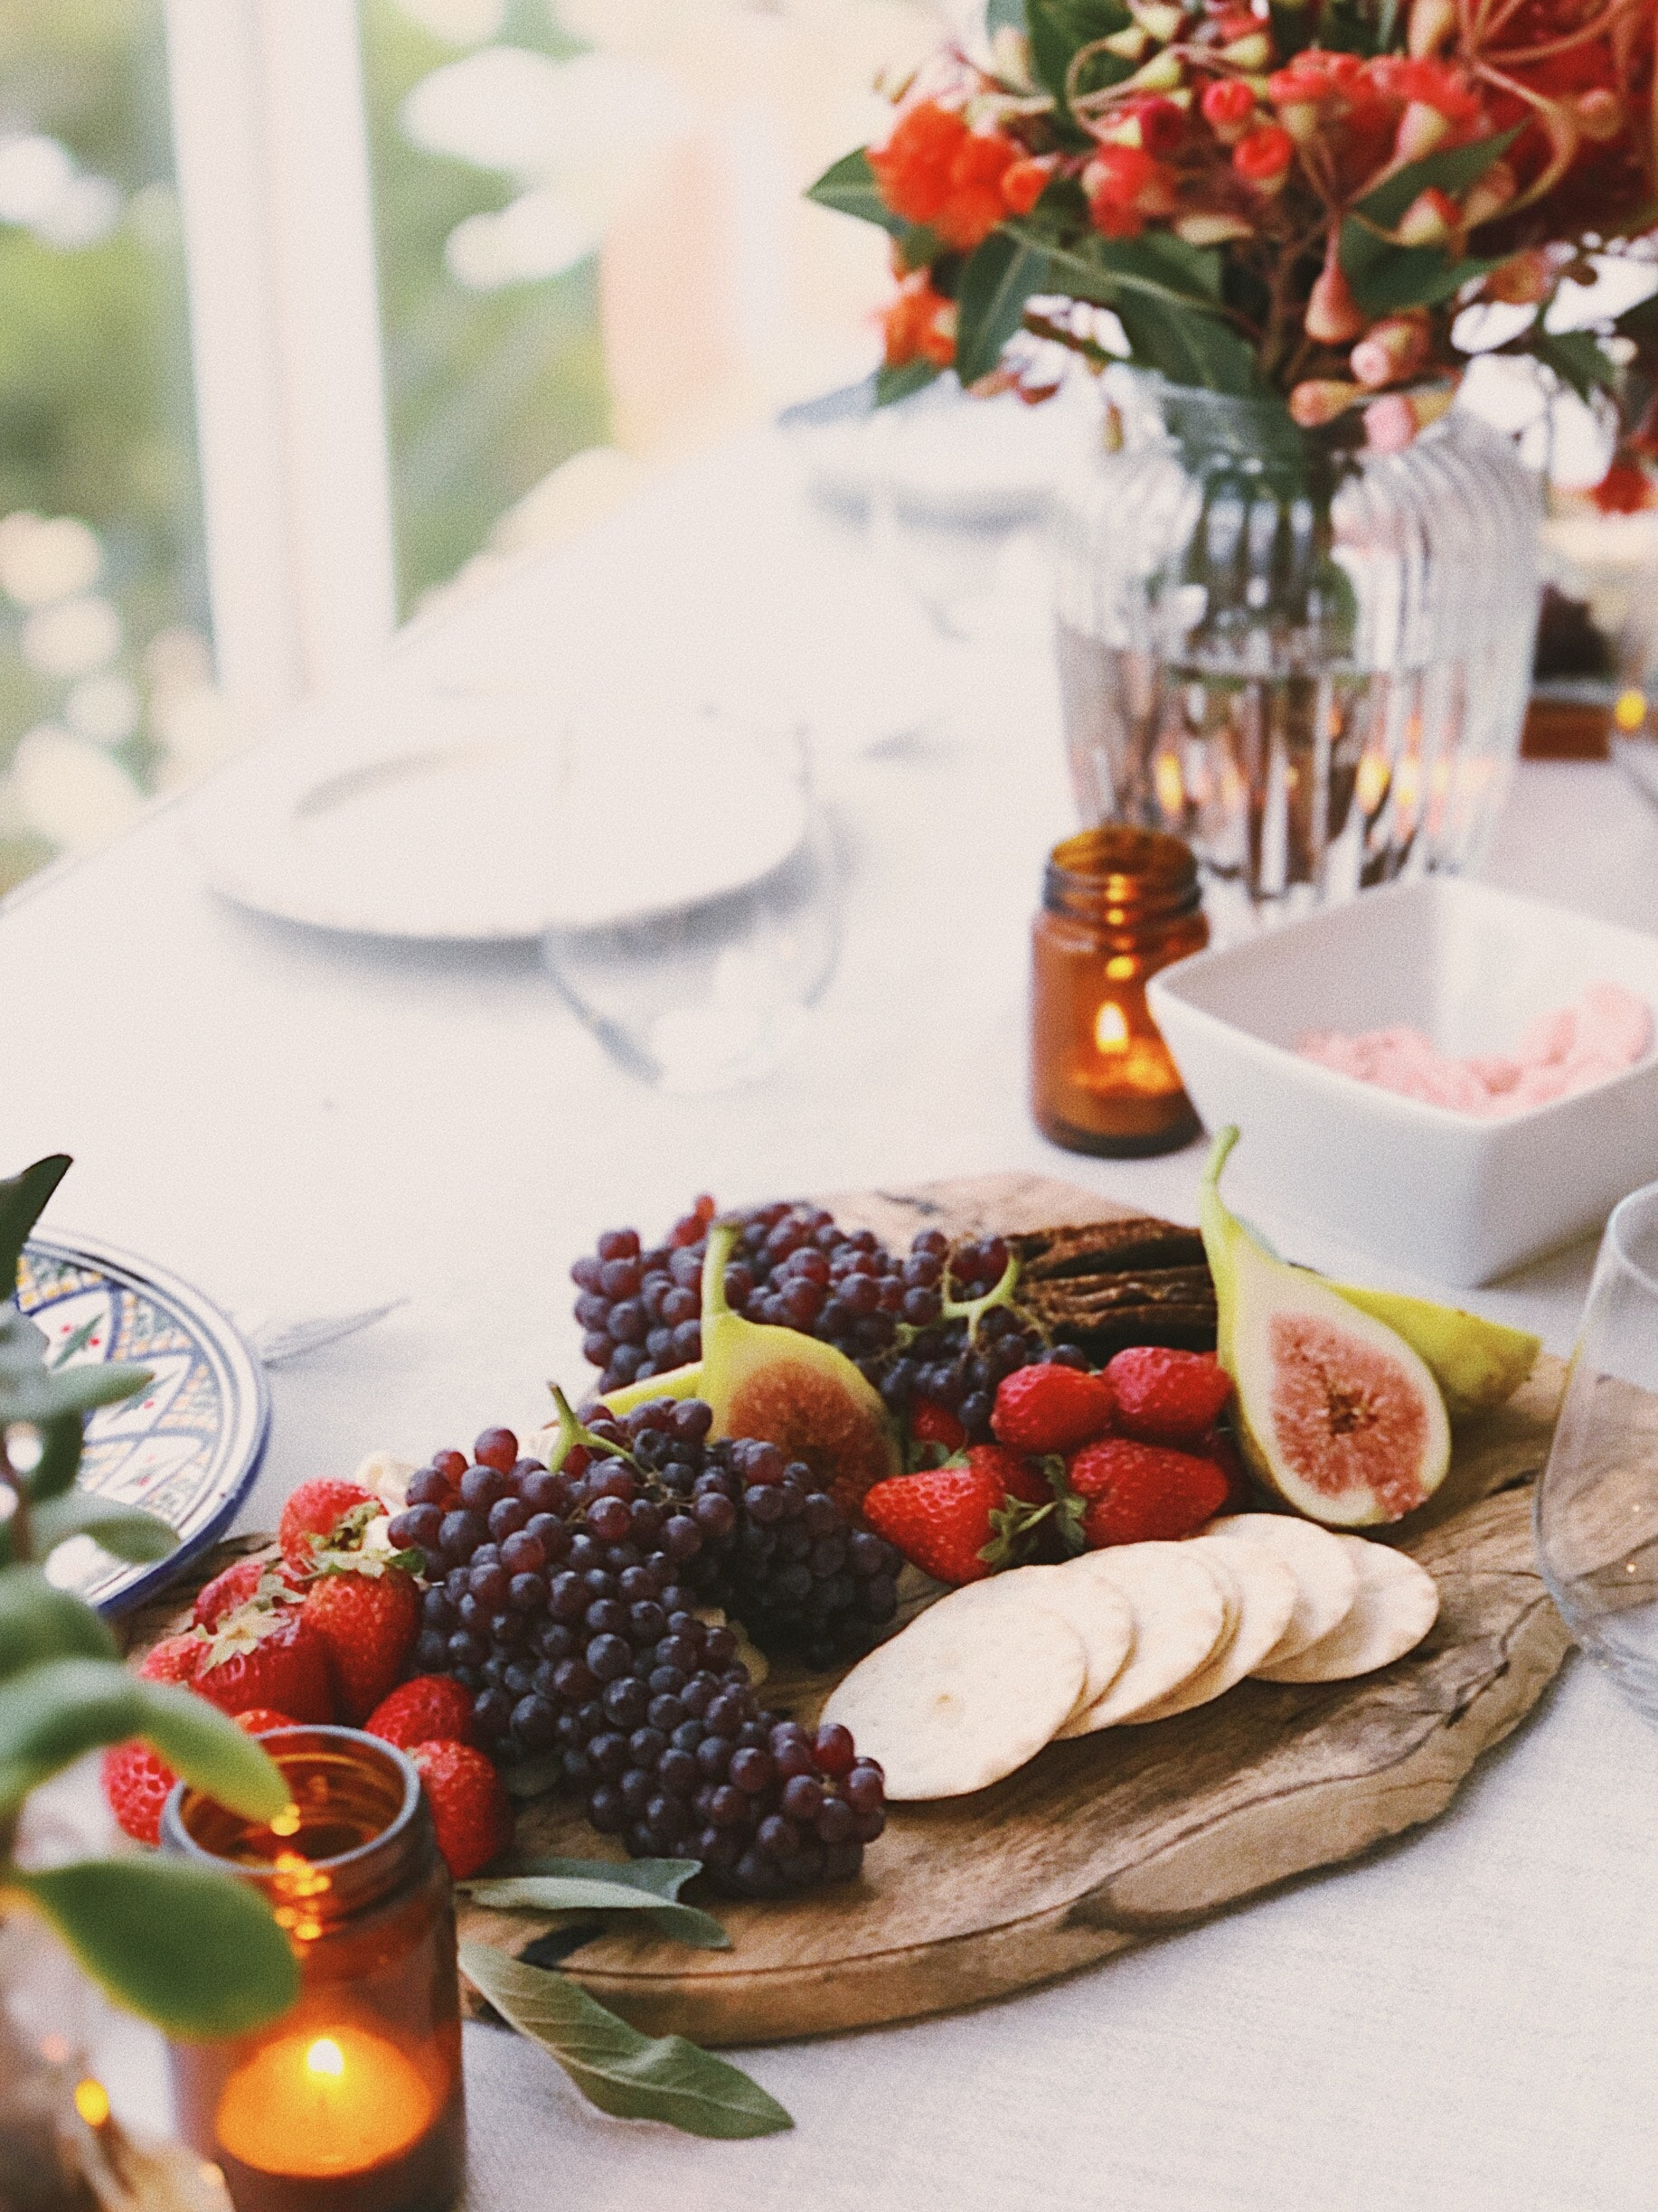 fancy fruit filled charcuterie board on table with a white table cloth.